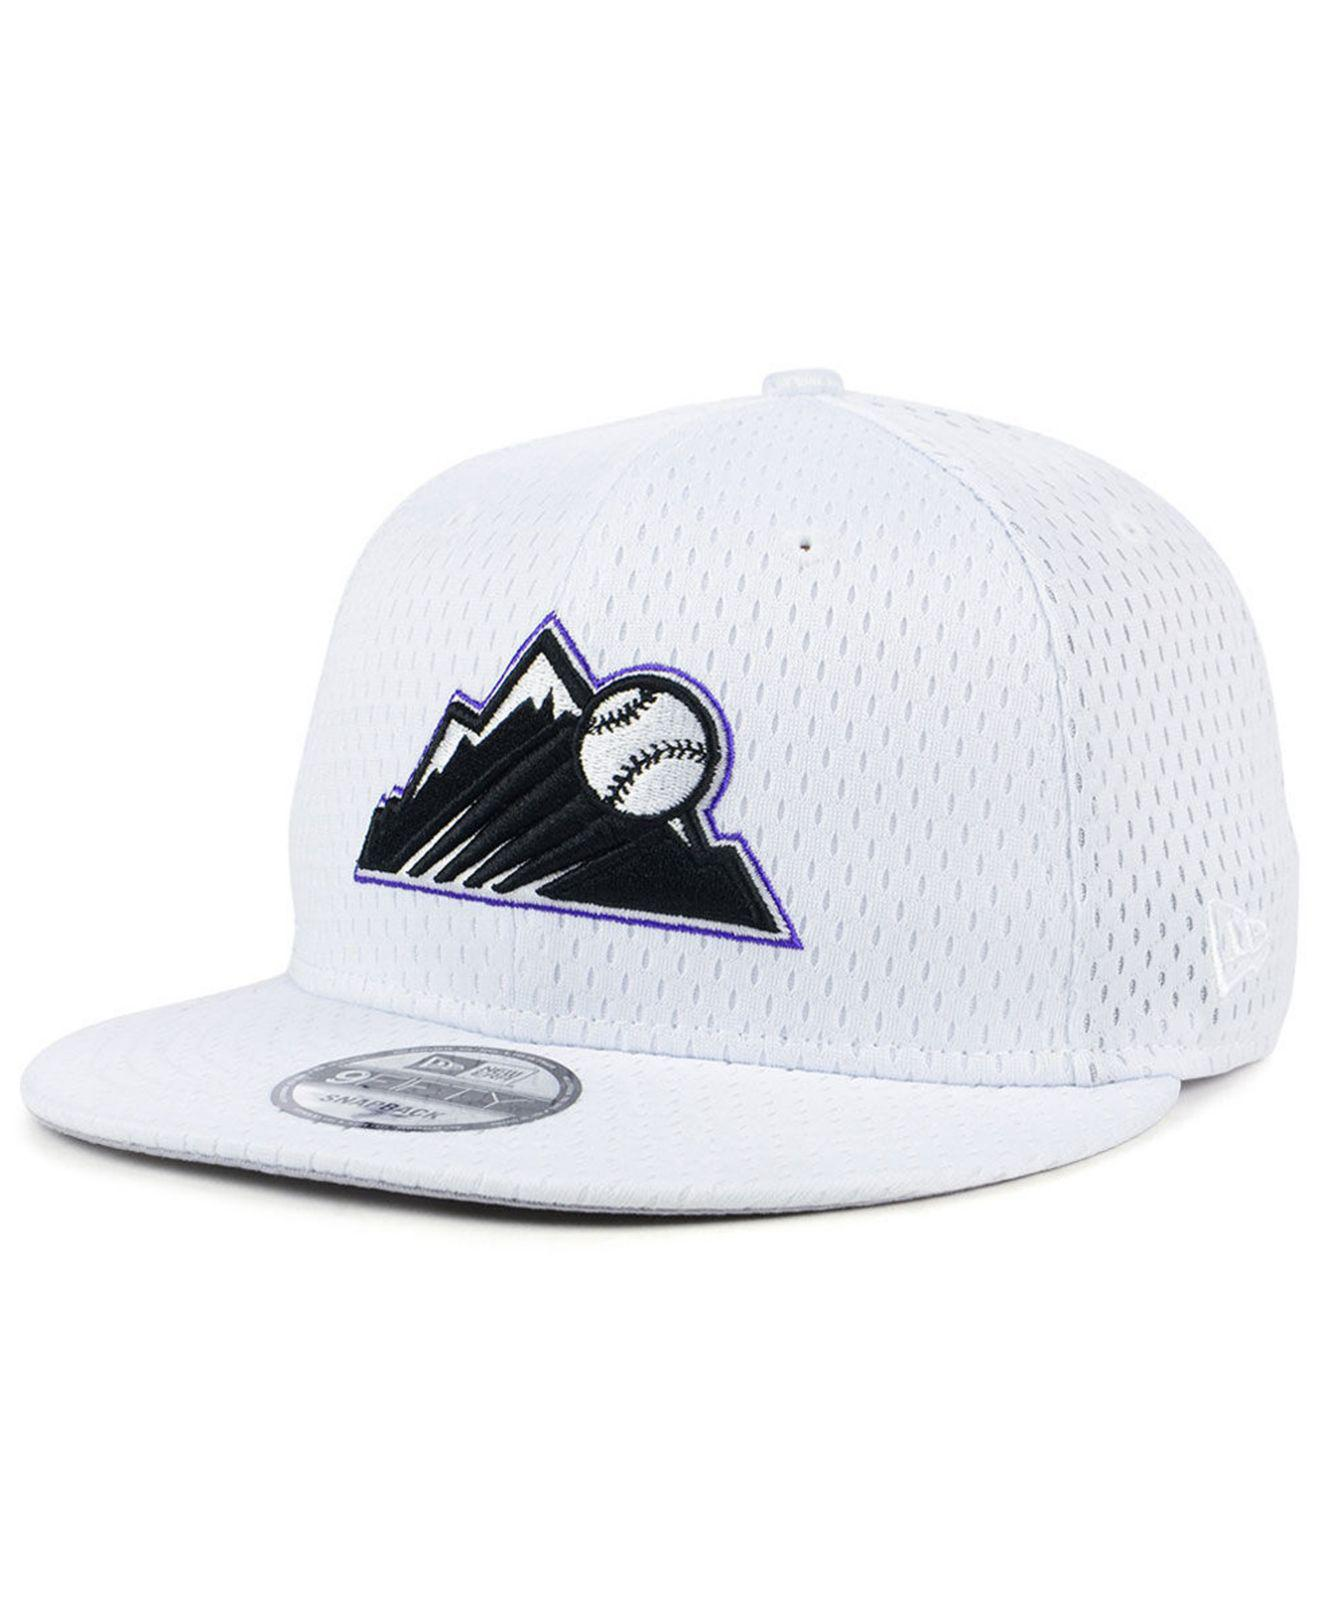 new concept 4faf0 ab89d ... black 2019 batting practice 59fifty fitted hat 369b8 2f5b1  australia lyst  ktz colorado rockies batting practice mesh 9fifty snapback 95562 91486